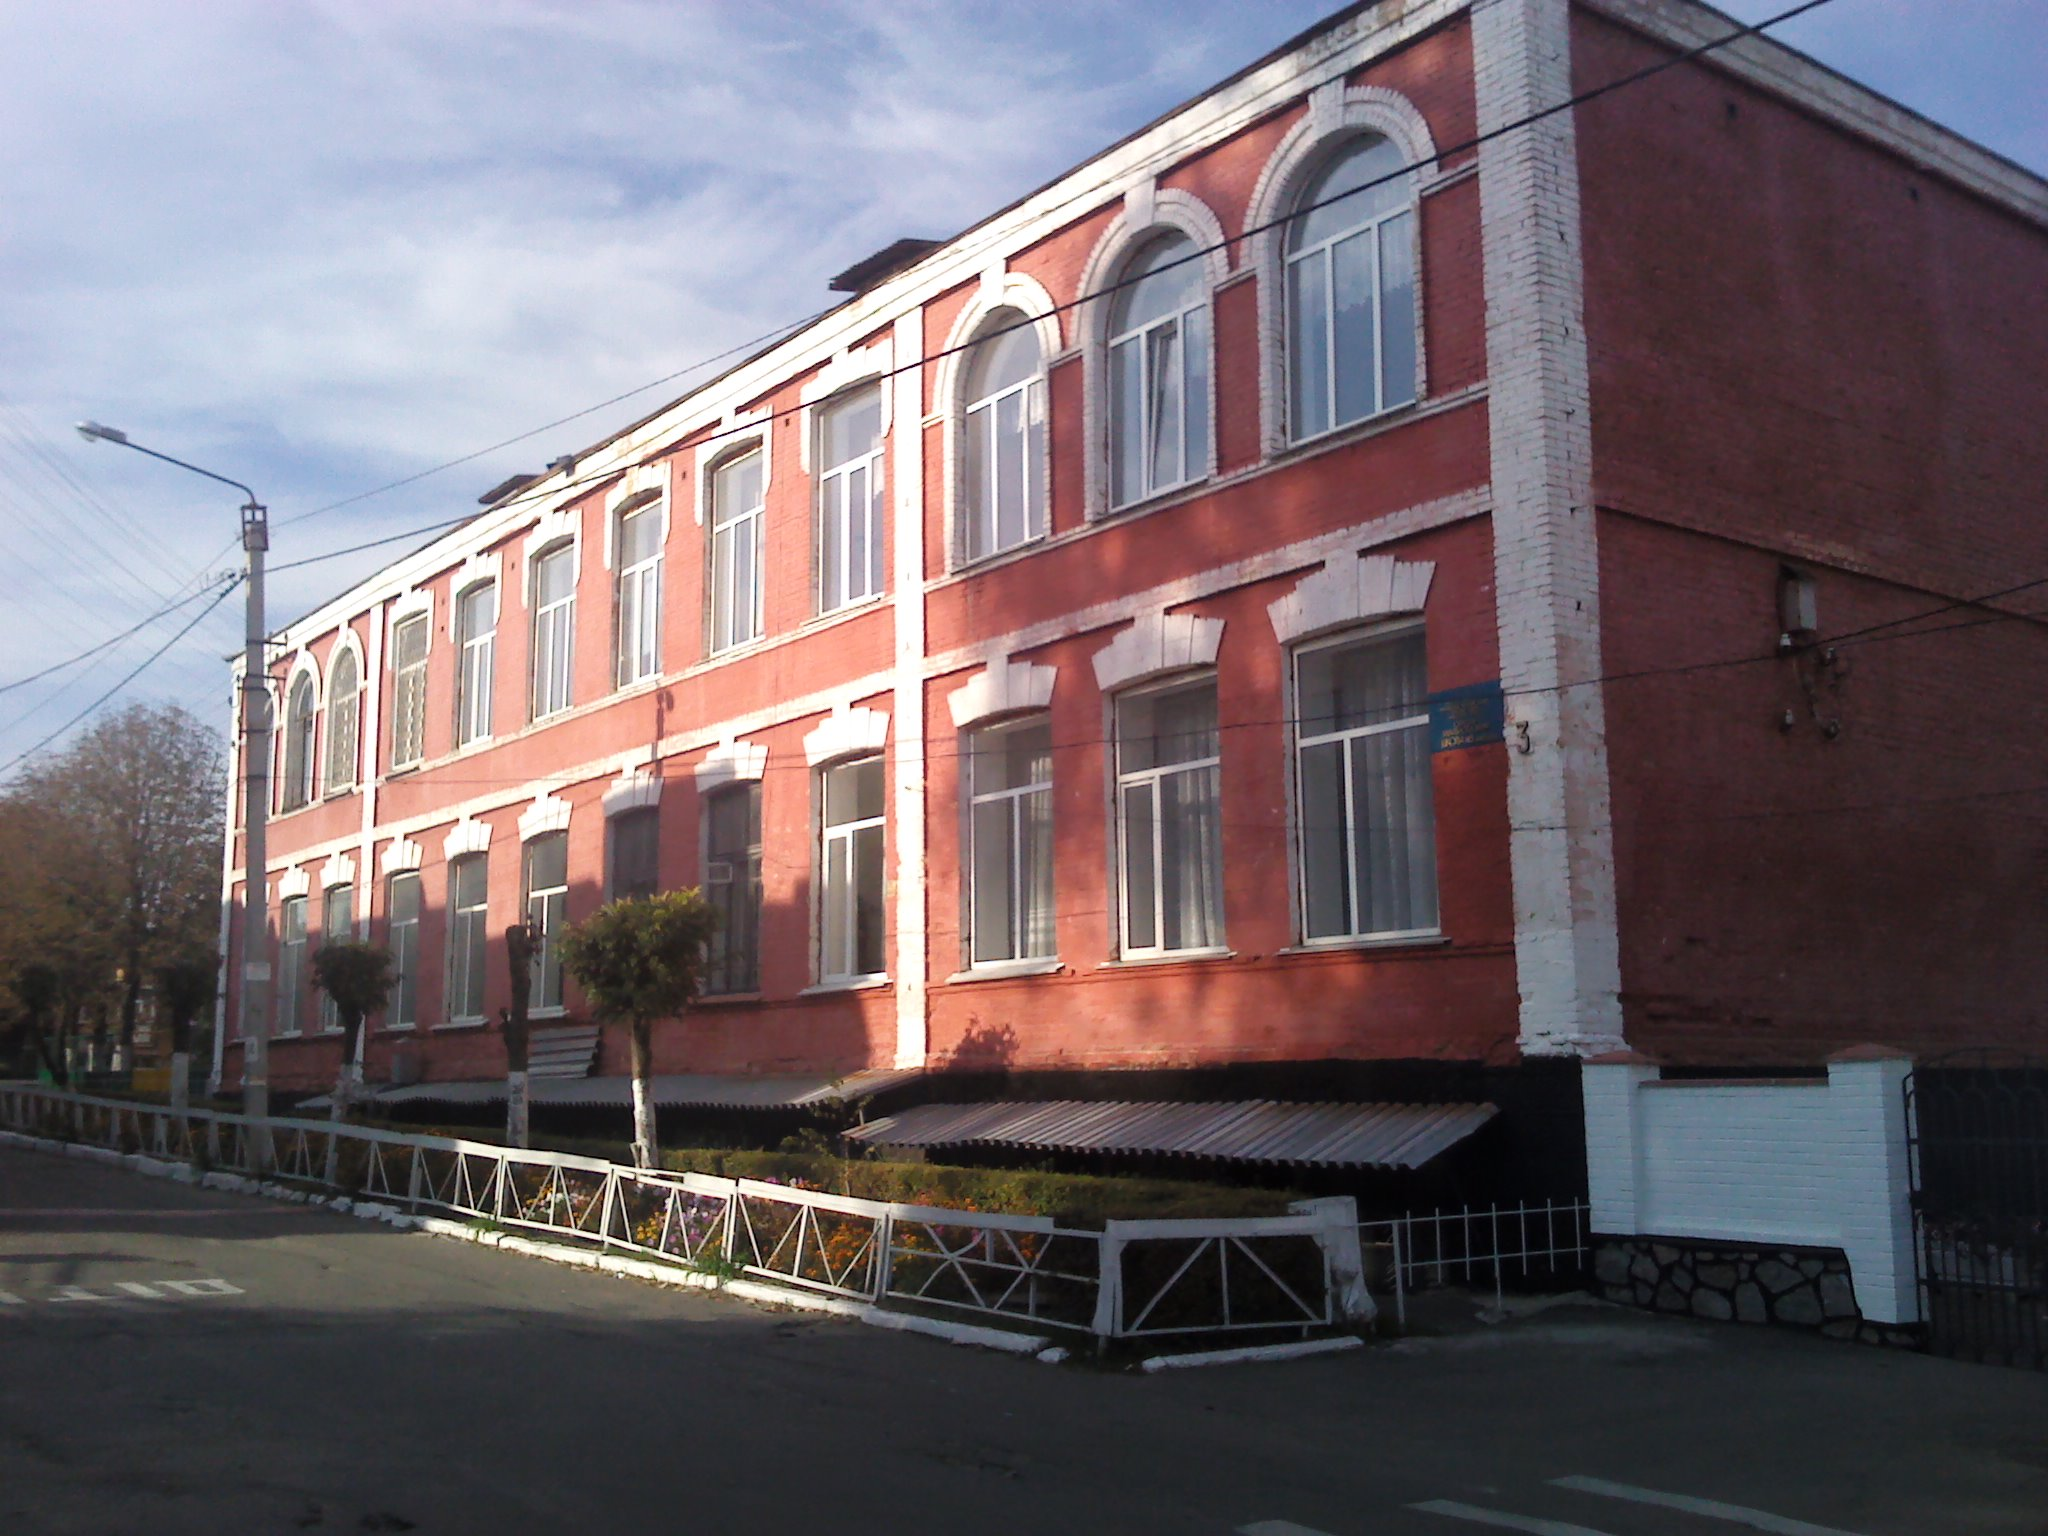 Former Jewish school, now it is a school No 8